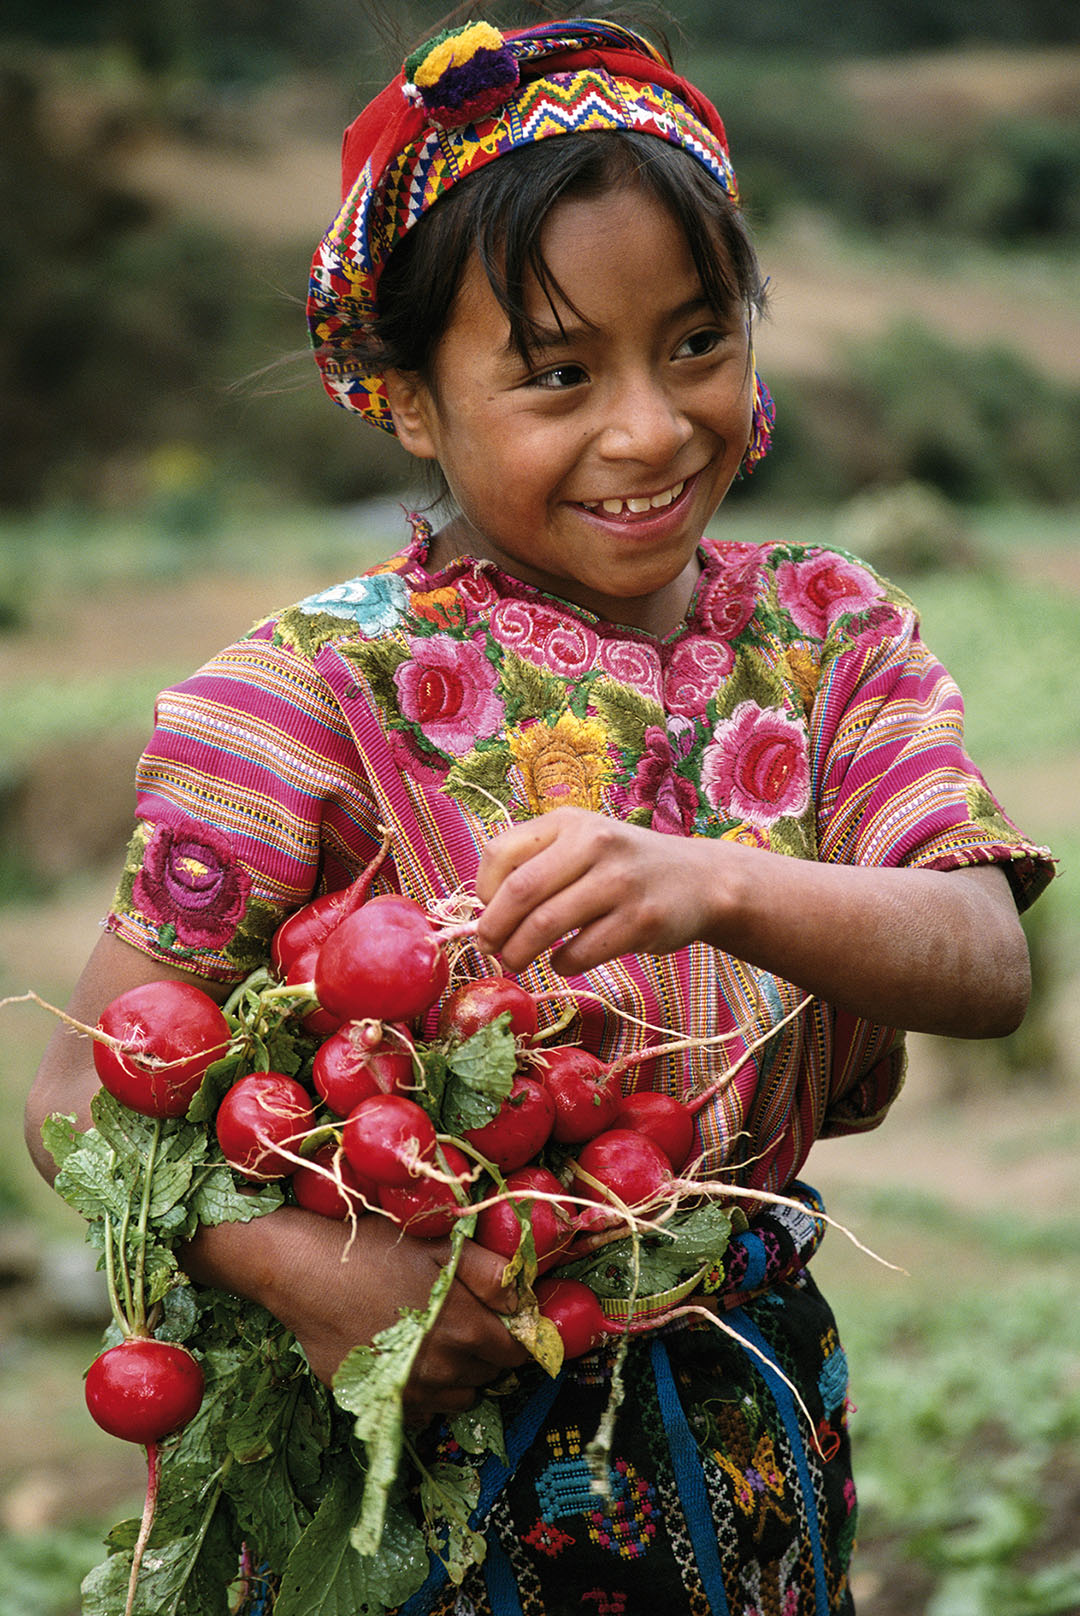 This girl is wearing a huipil, a traditional Mayan blouse, Zunil, Guatemala.